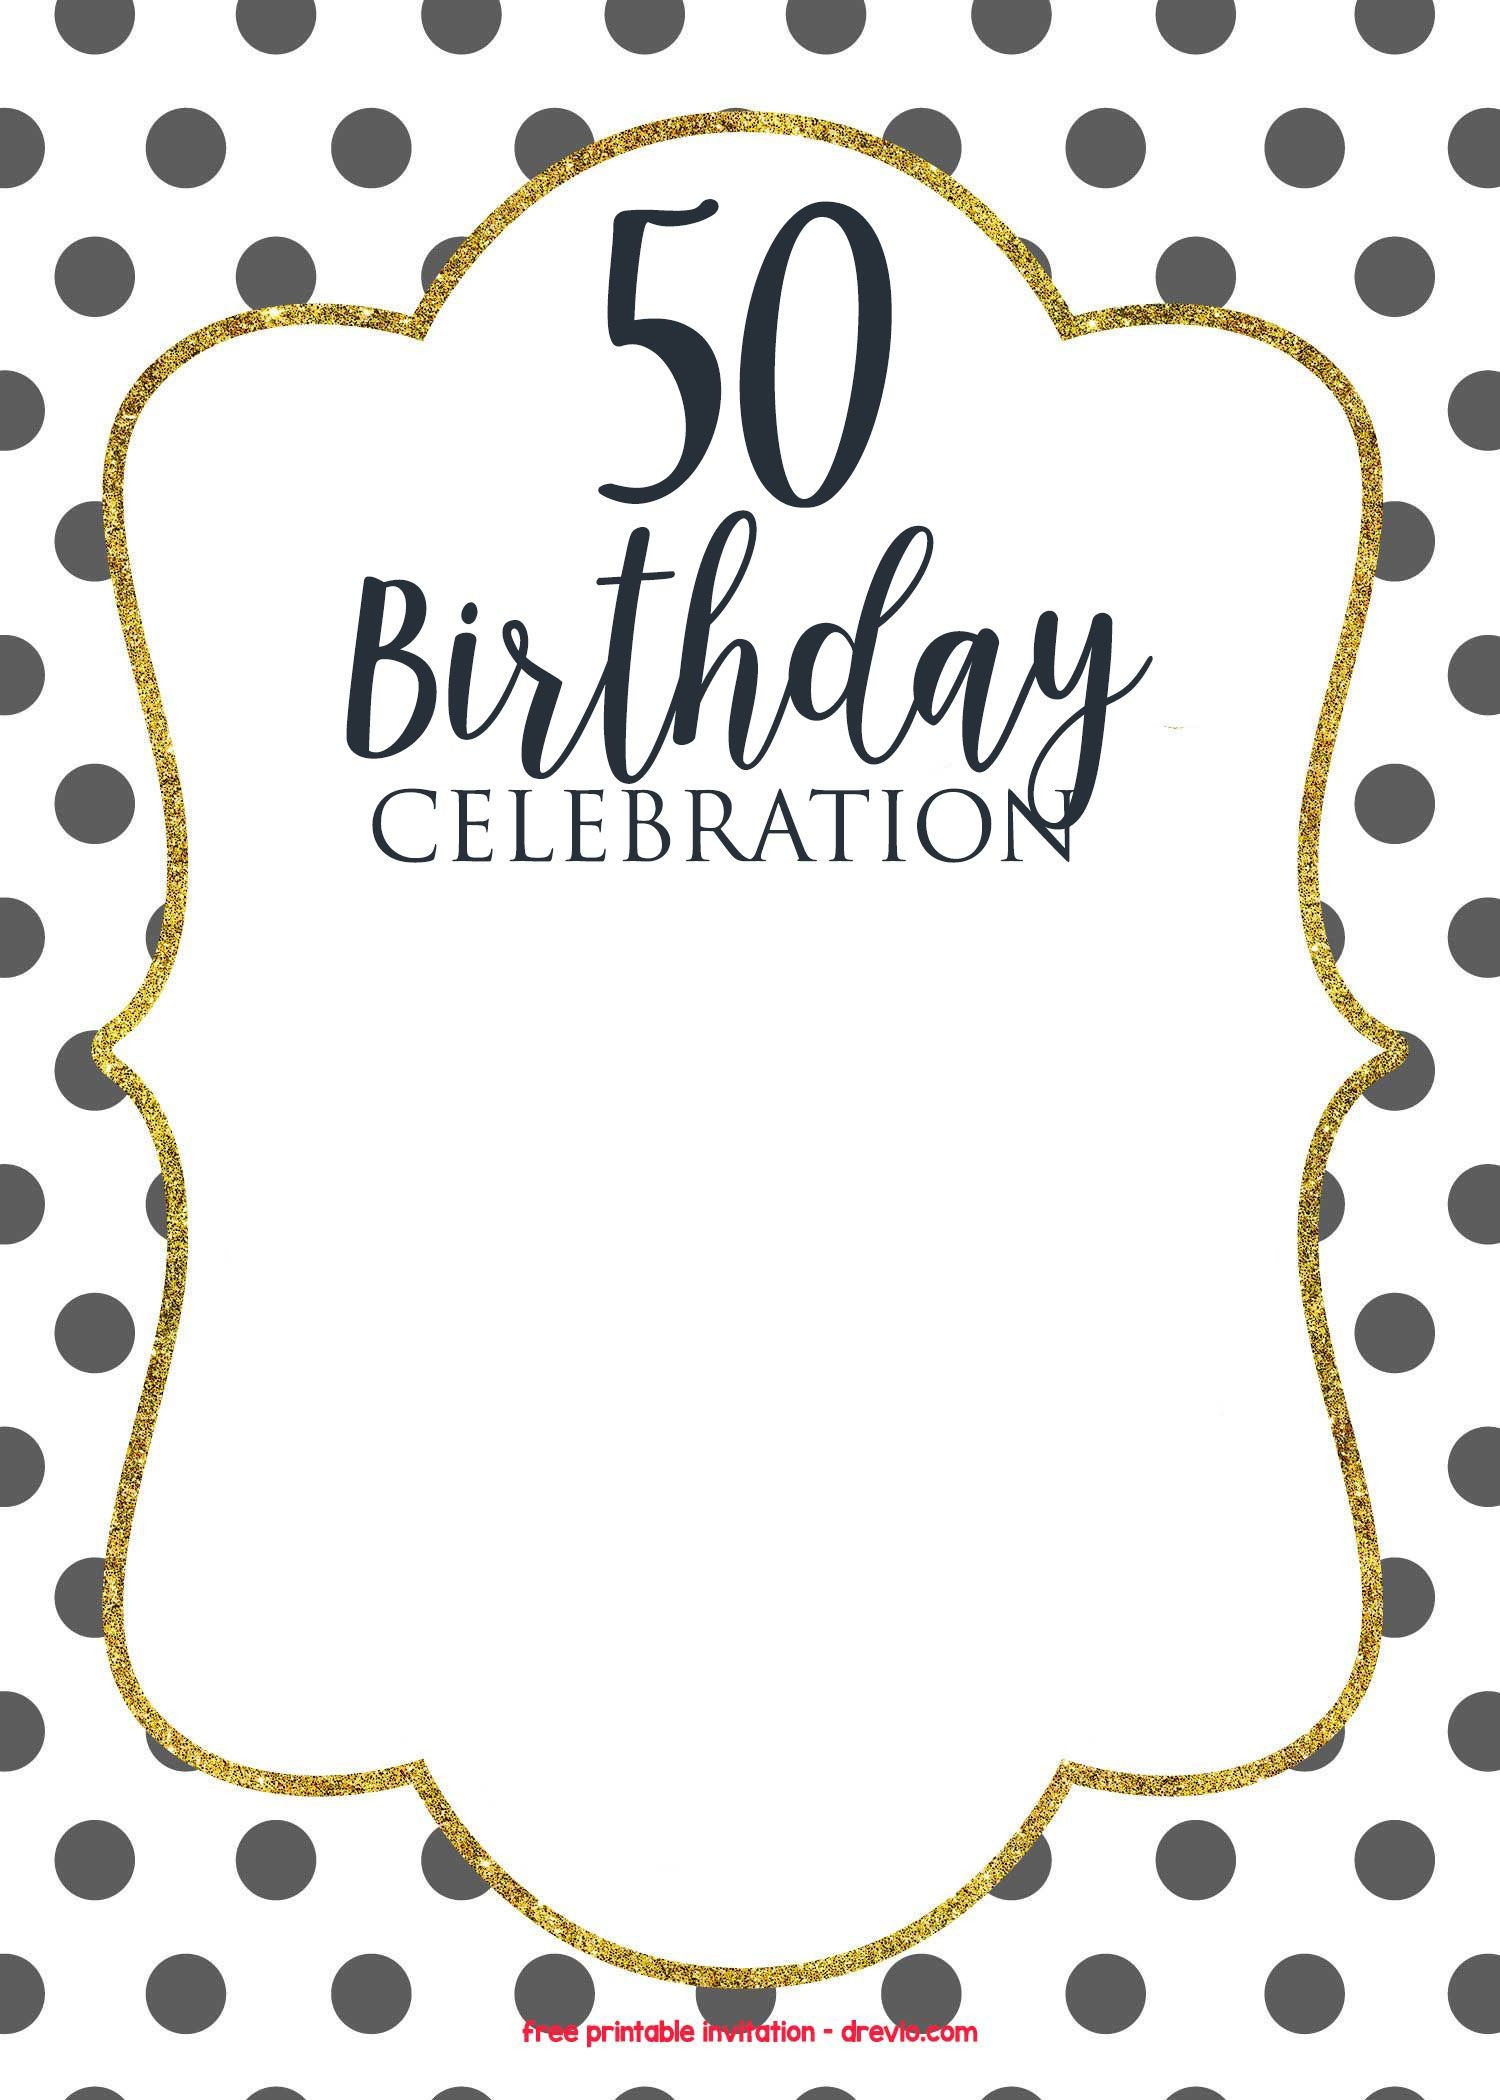 Download Now 50th Birthday Invitations Online Free Invitation Templates Printable